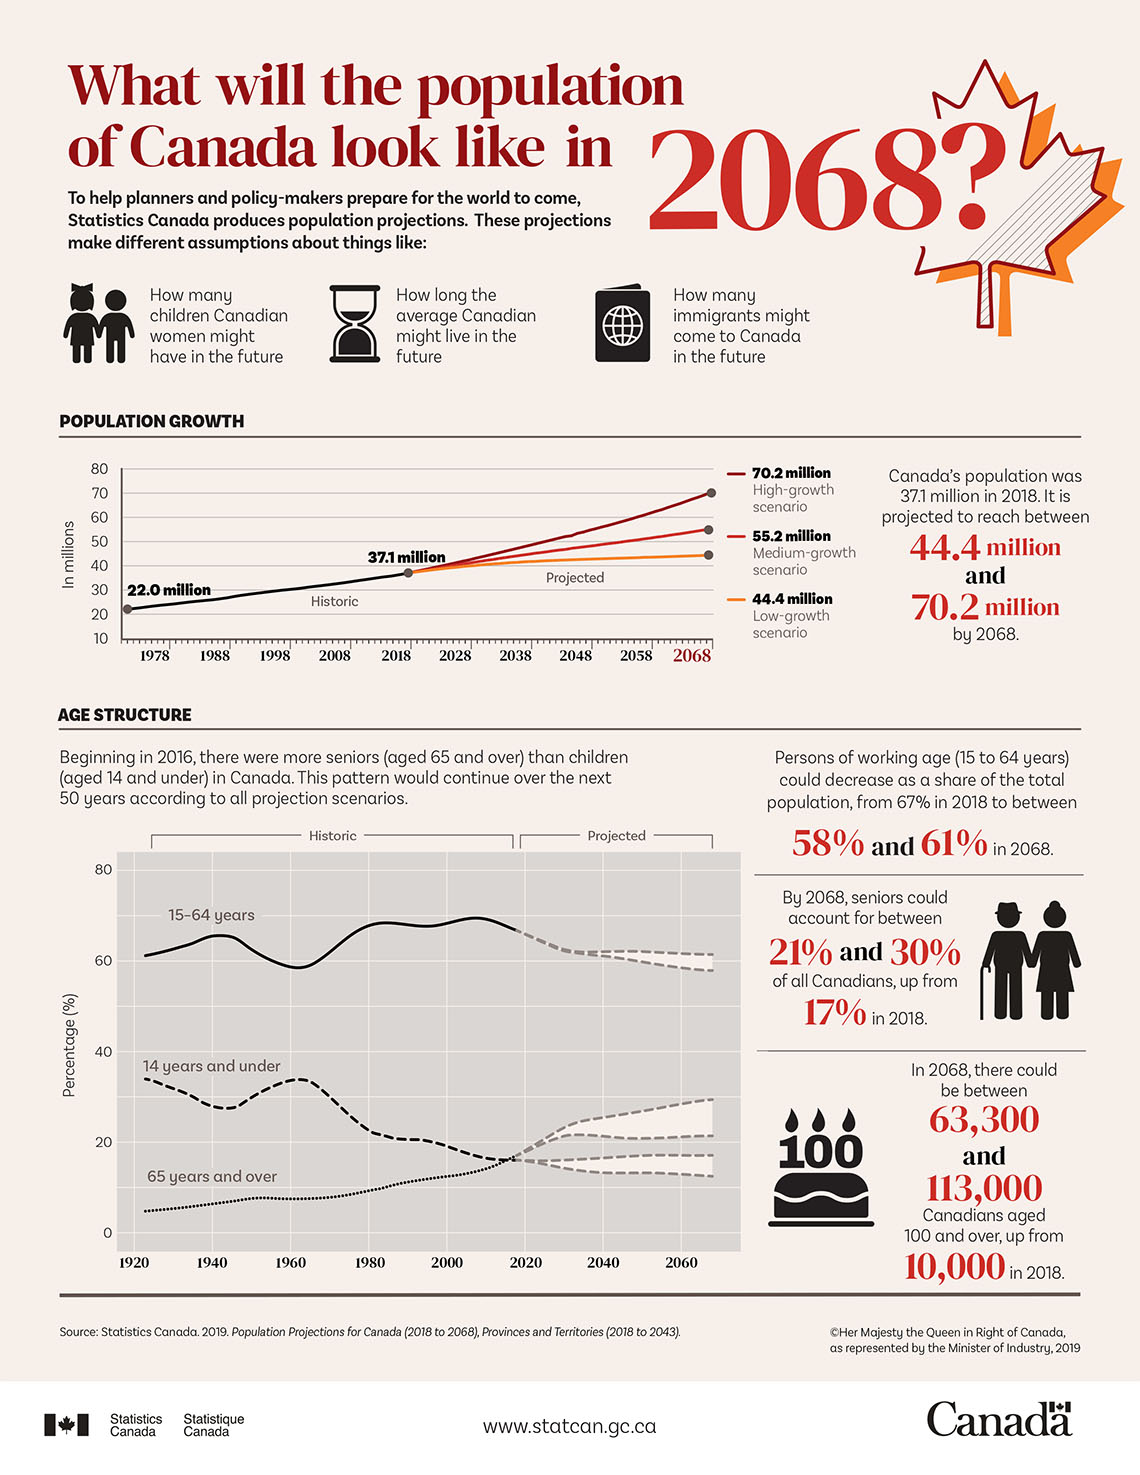 Infographic: What will the population of Canada look like in 2068?